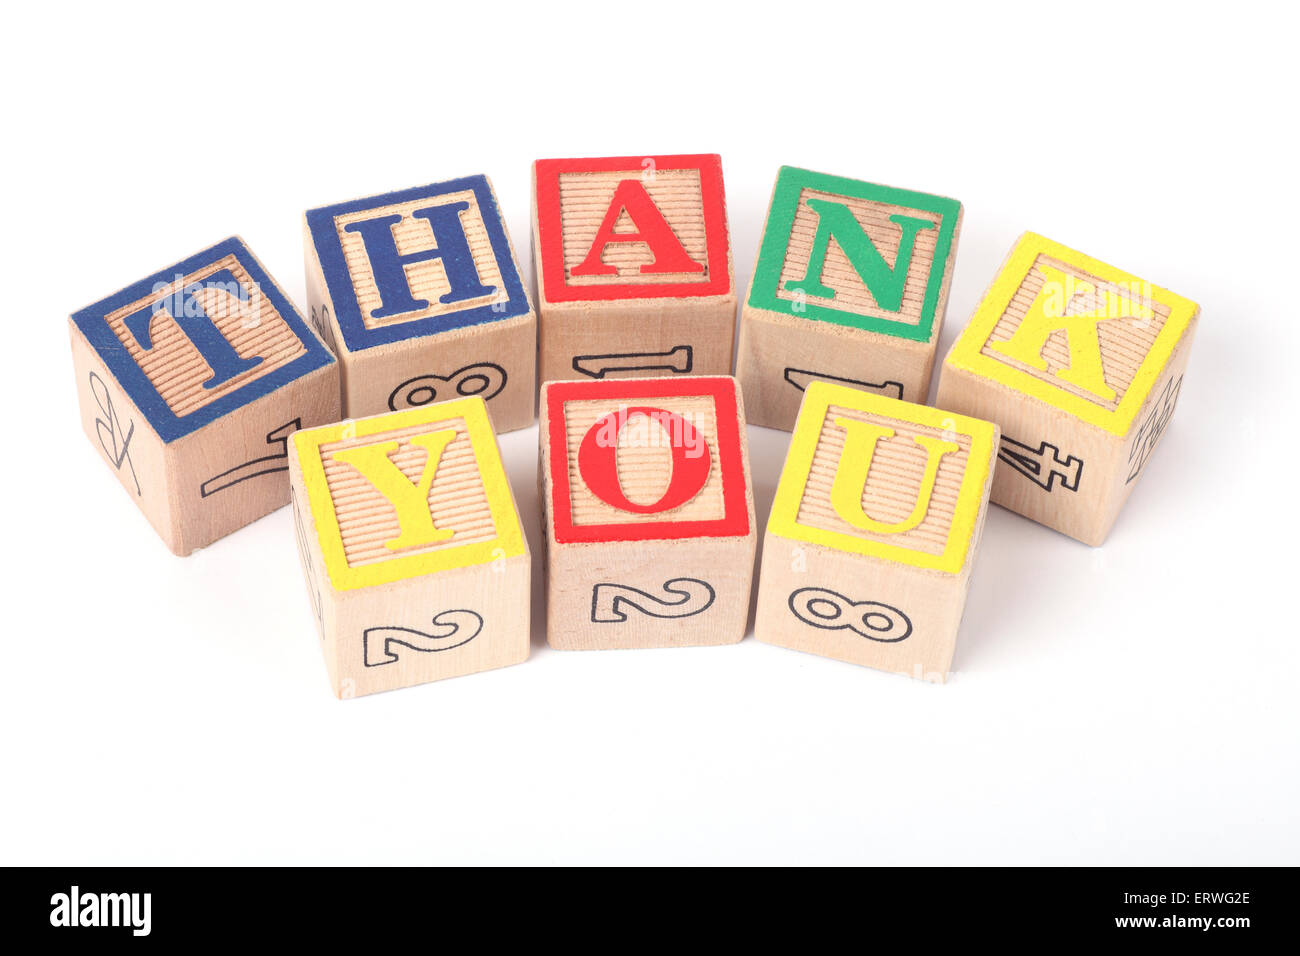 Thank You written with childrens building blocks - Stock Image